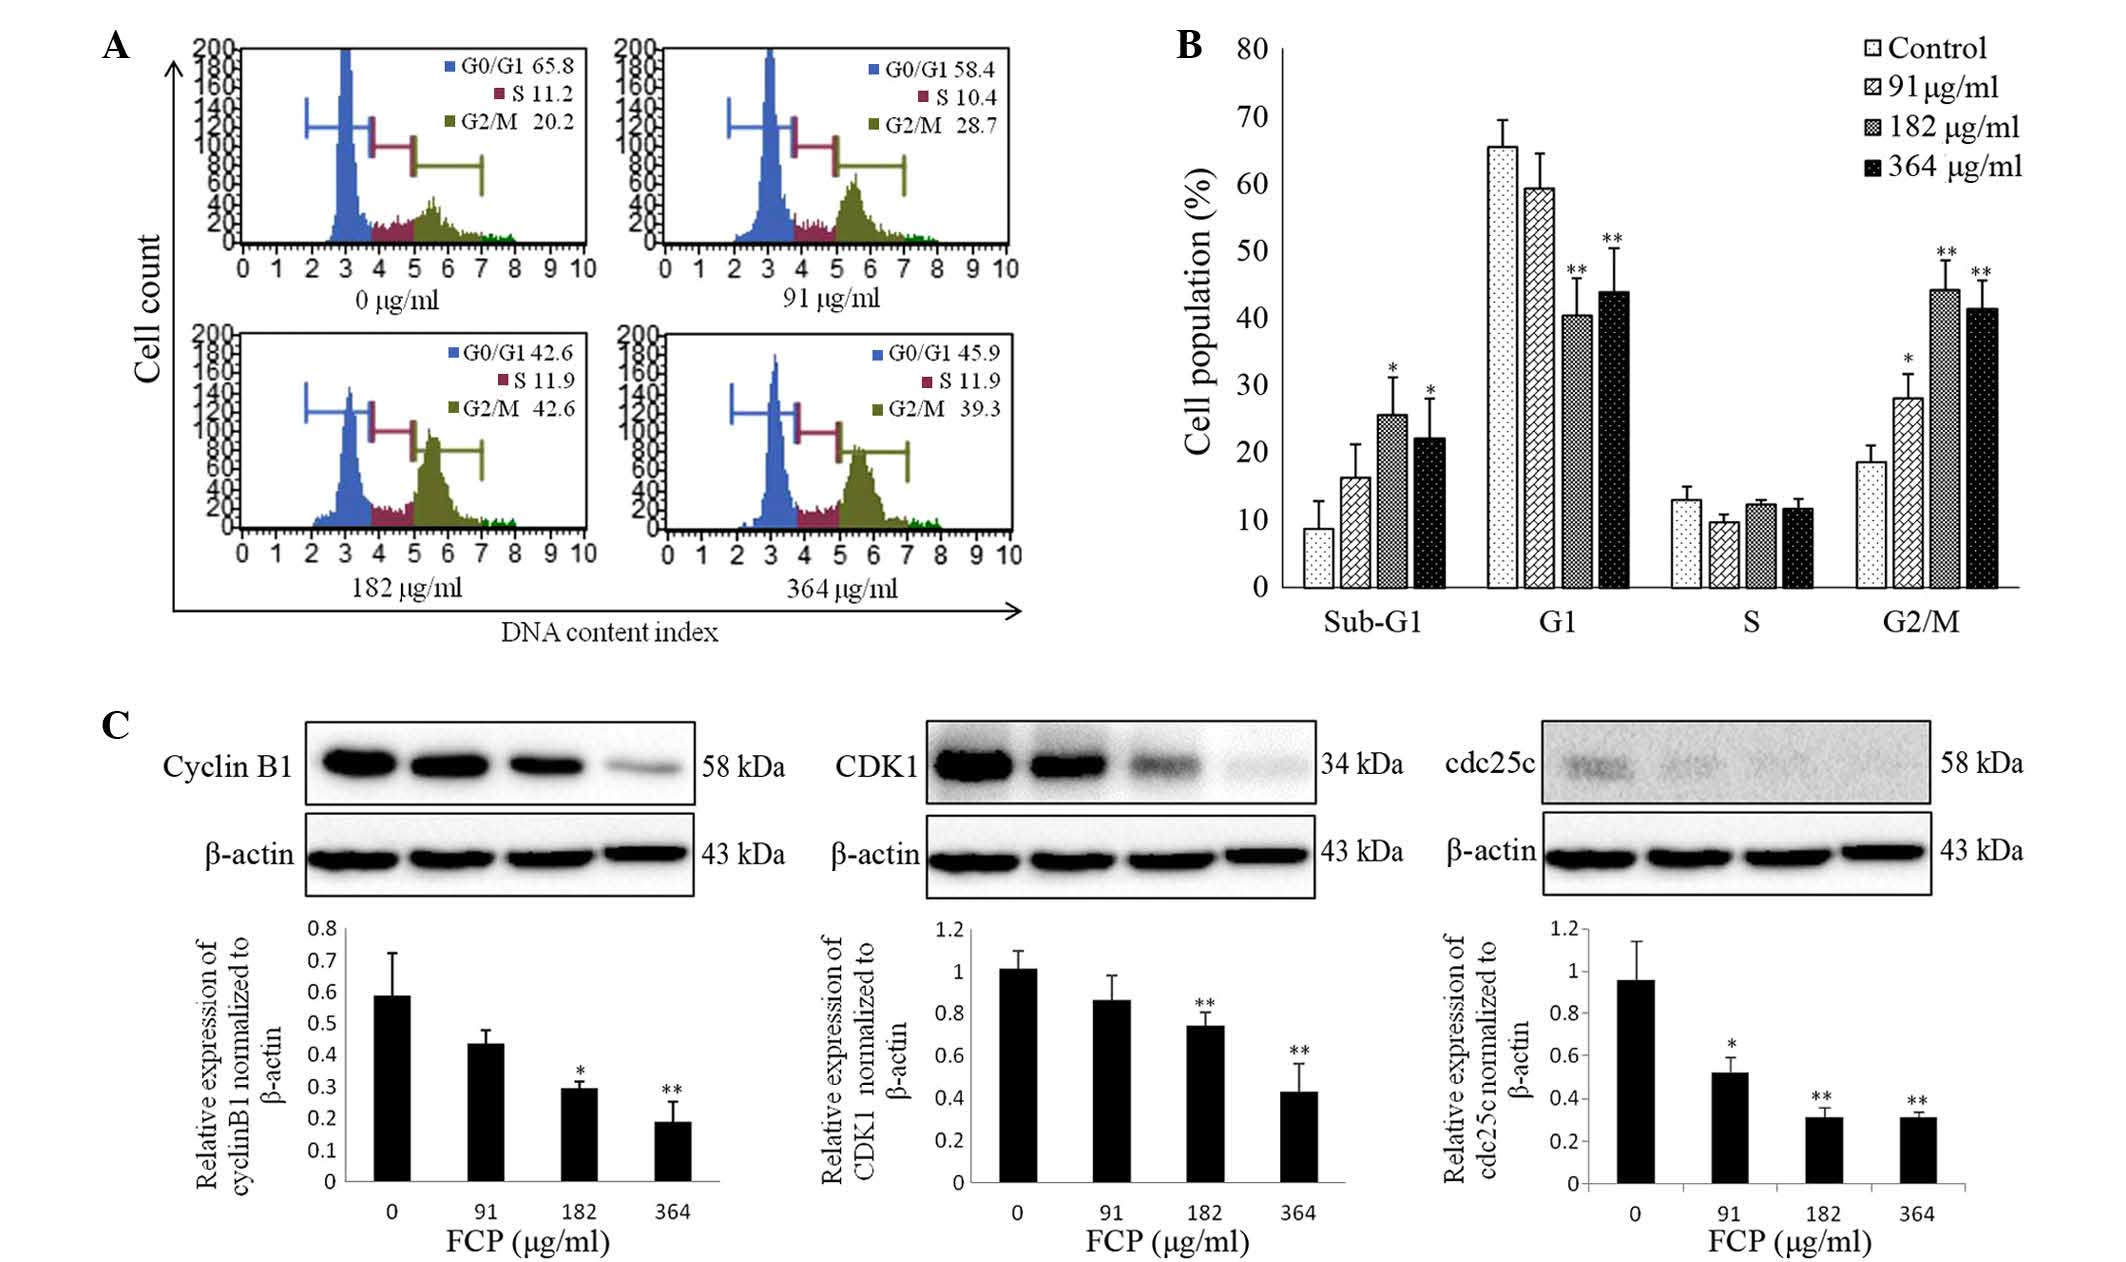 Flavonoids Isolated From Citrus Platymamma Induced G2 M Cell Cycle Arrest And Apoptosis In A549